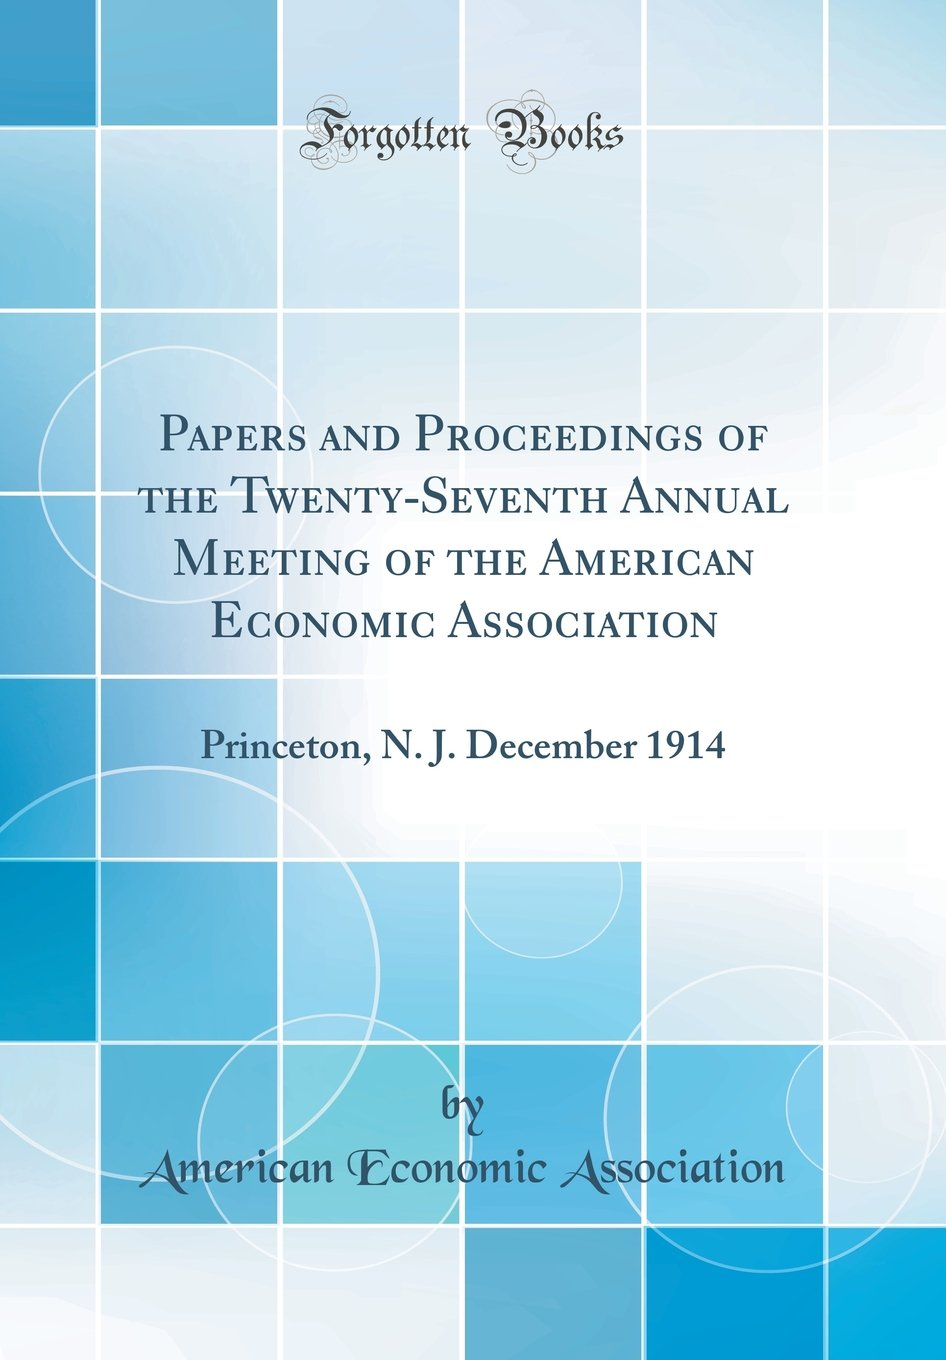 Papers and Proceedings of the Twenty-Seventh Annual Meeting of the American Economic Association: Princeton, N. J. December 1914 (Classic Reprint) PDF Text fb2 book